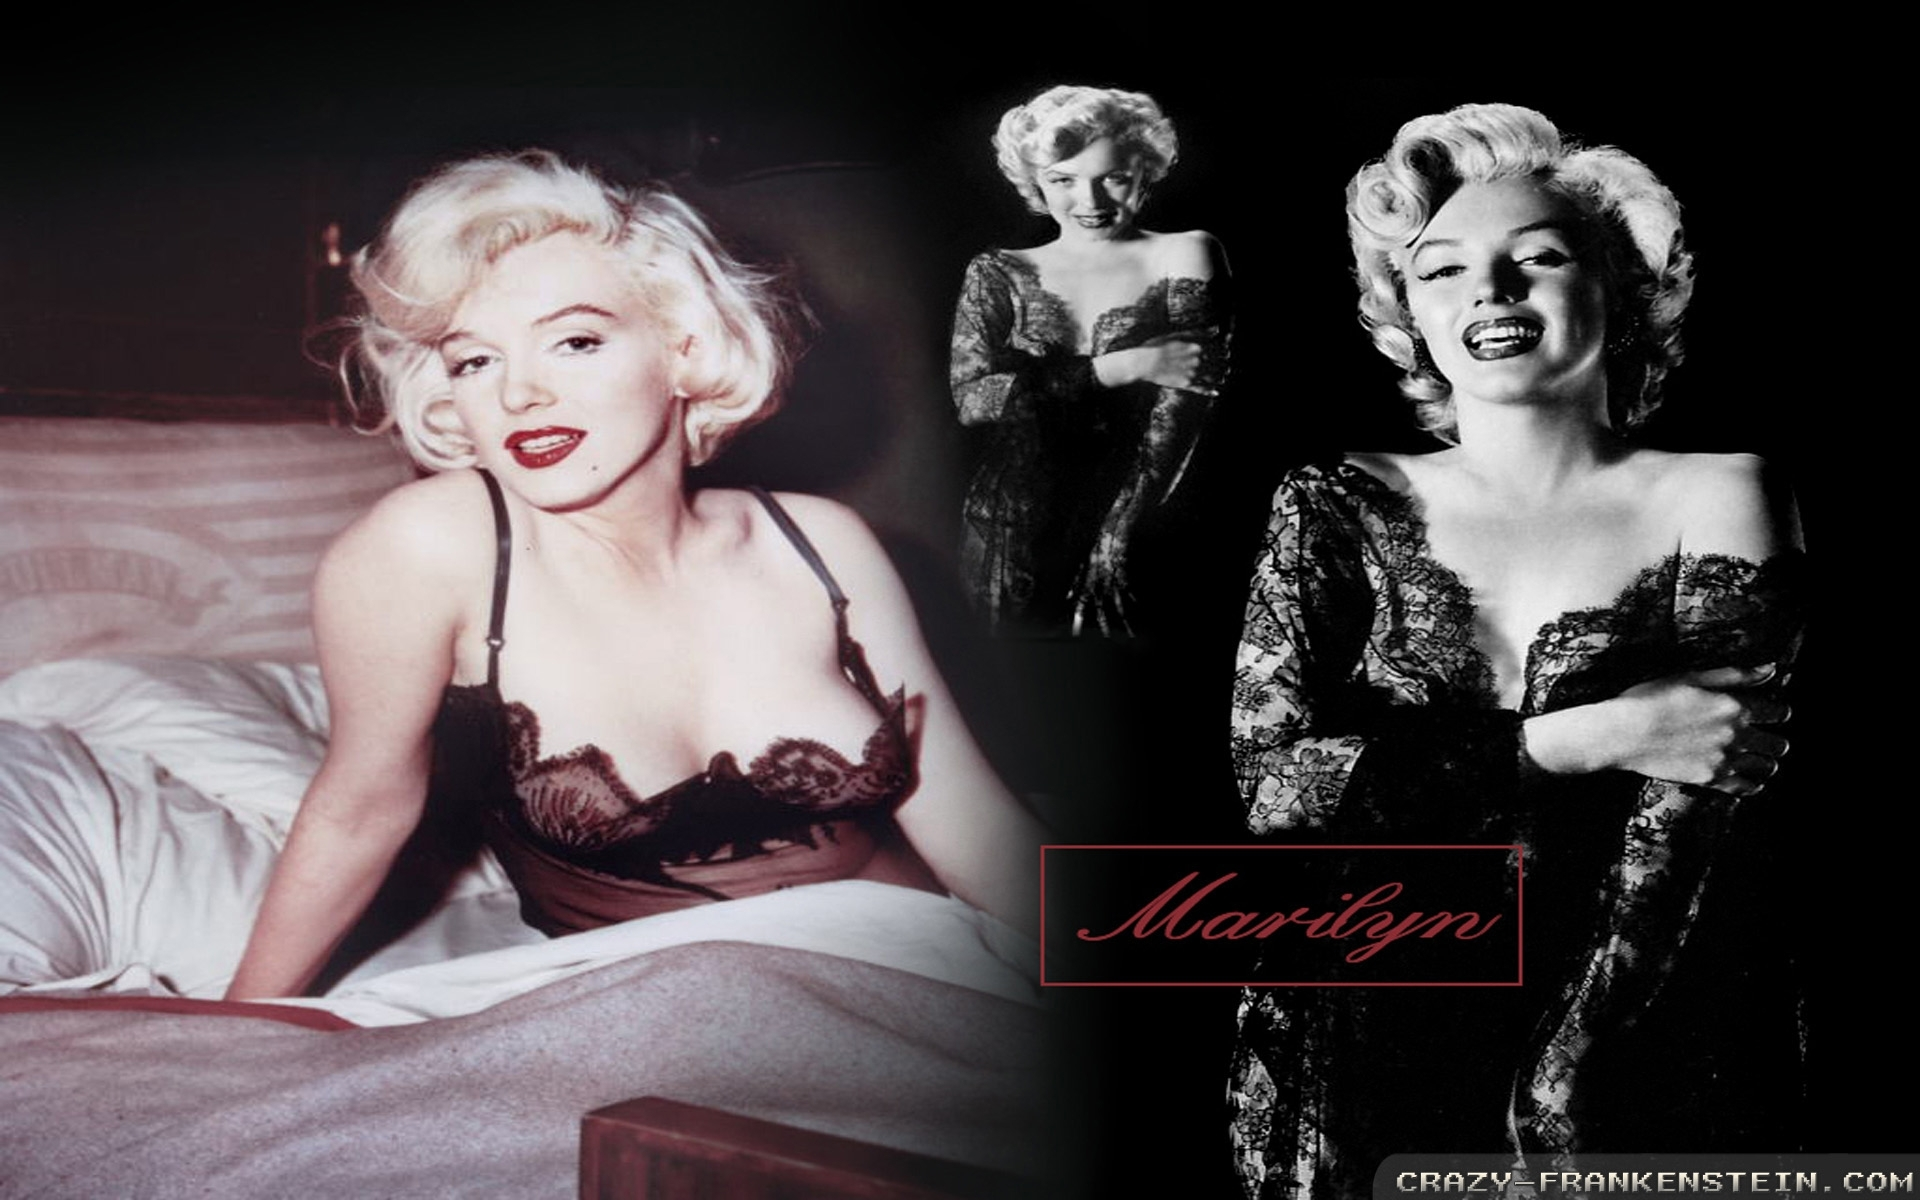 marilyn monroe wallpapers - female celebrity - crazy frankenstein